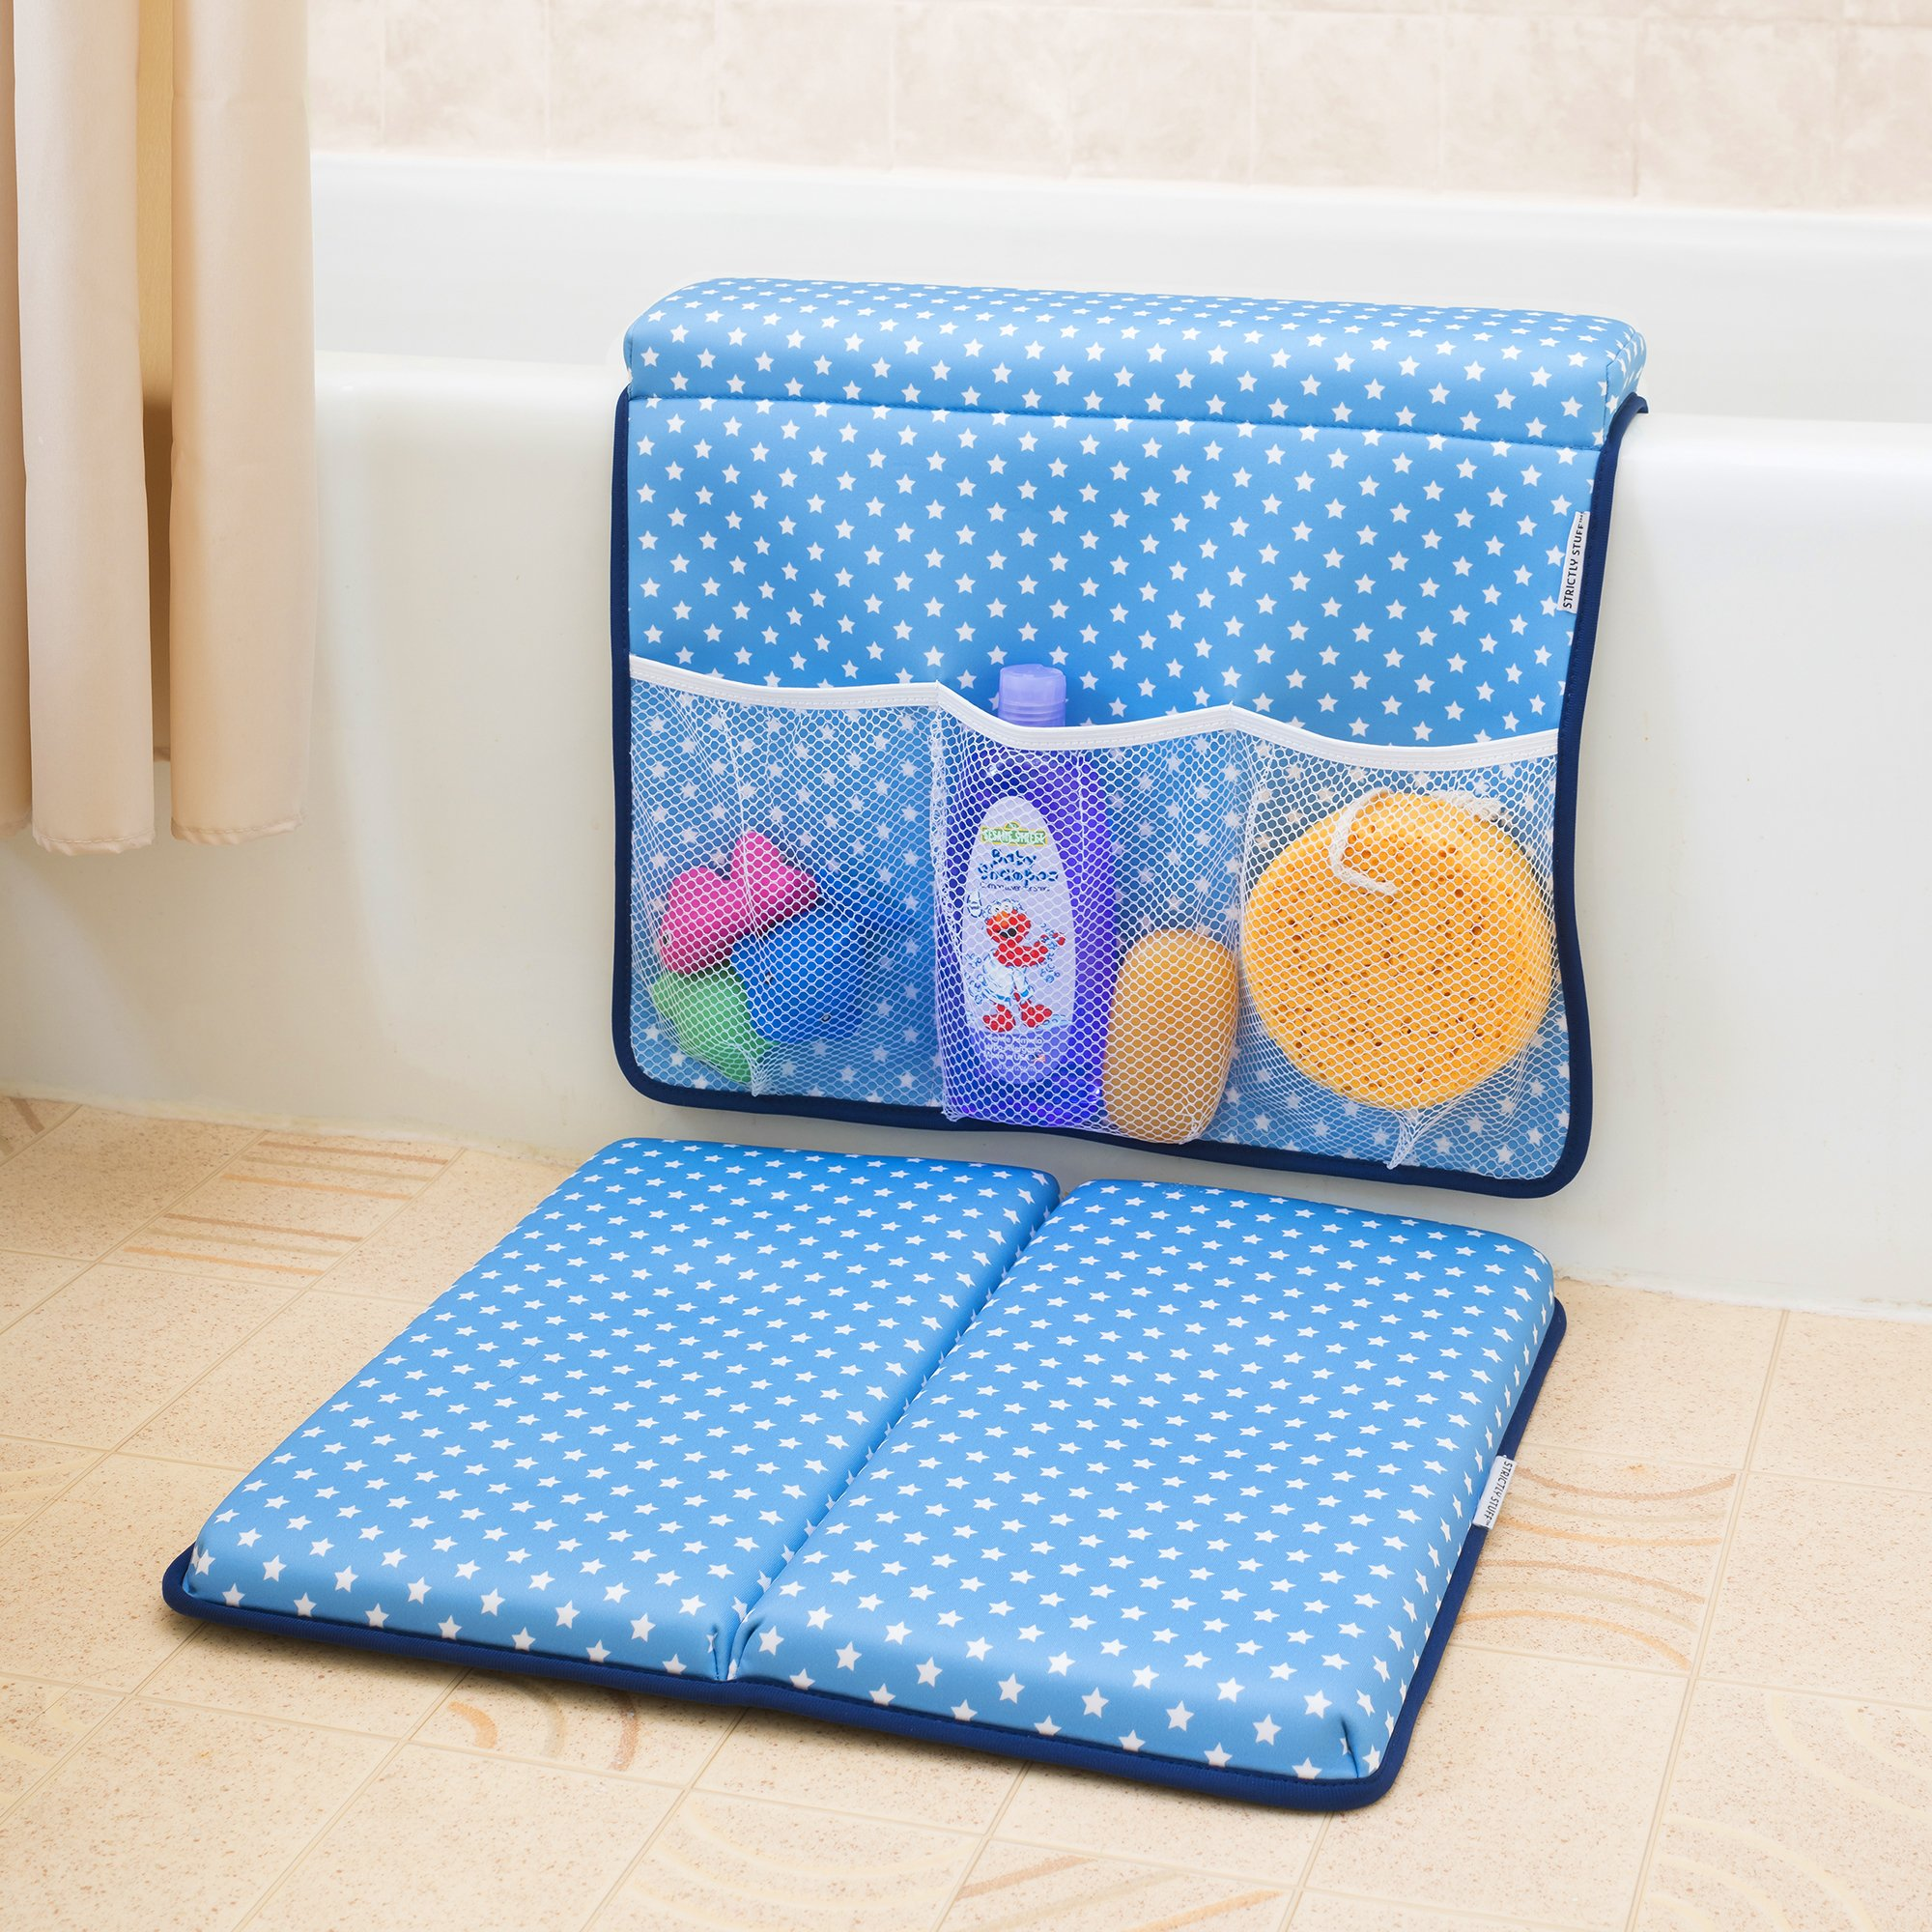 Strictly Stuff Baby Bath Kneeler and Elbow Pad (Pink). Thick, Soft Knee Padding. Durable Neoprene Material and Design. Non-Slip Backing with Suction Cups. Fits All tubs. Three Great Color Patterns. by Strictly Stuff (Image #3)